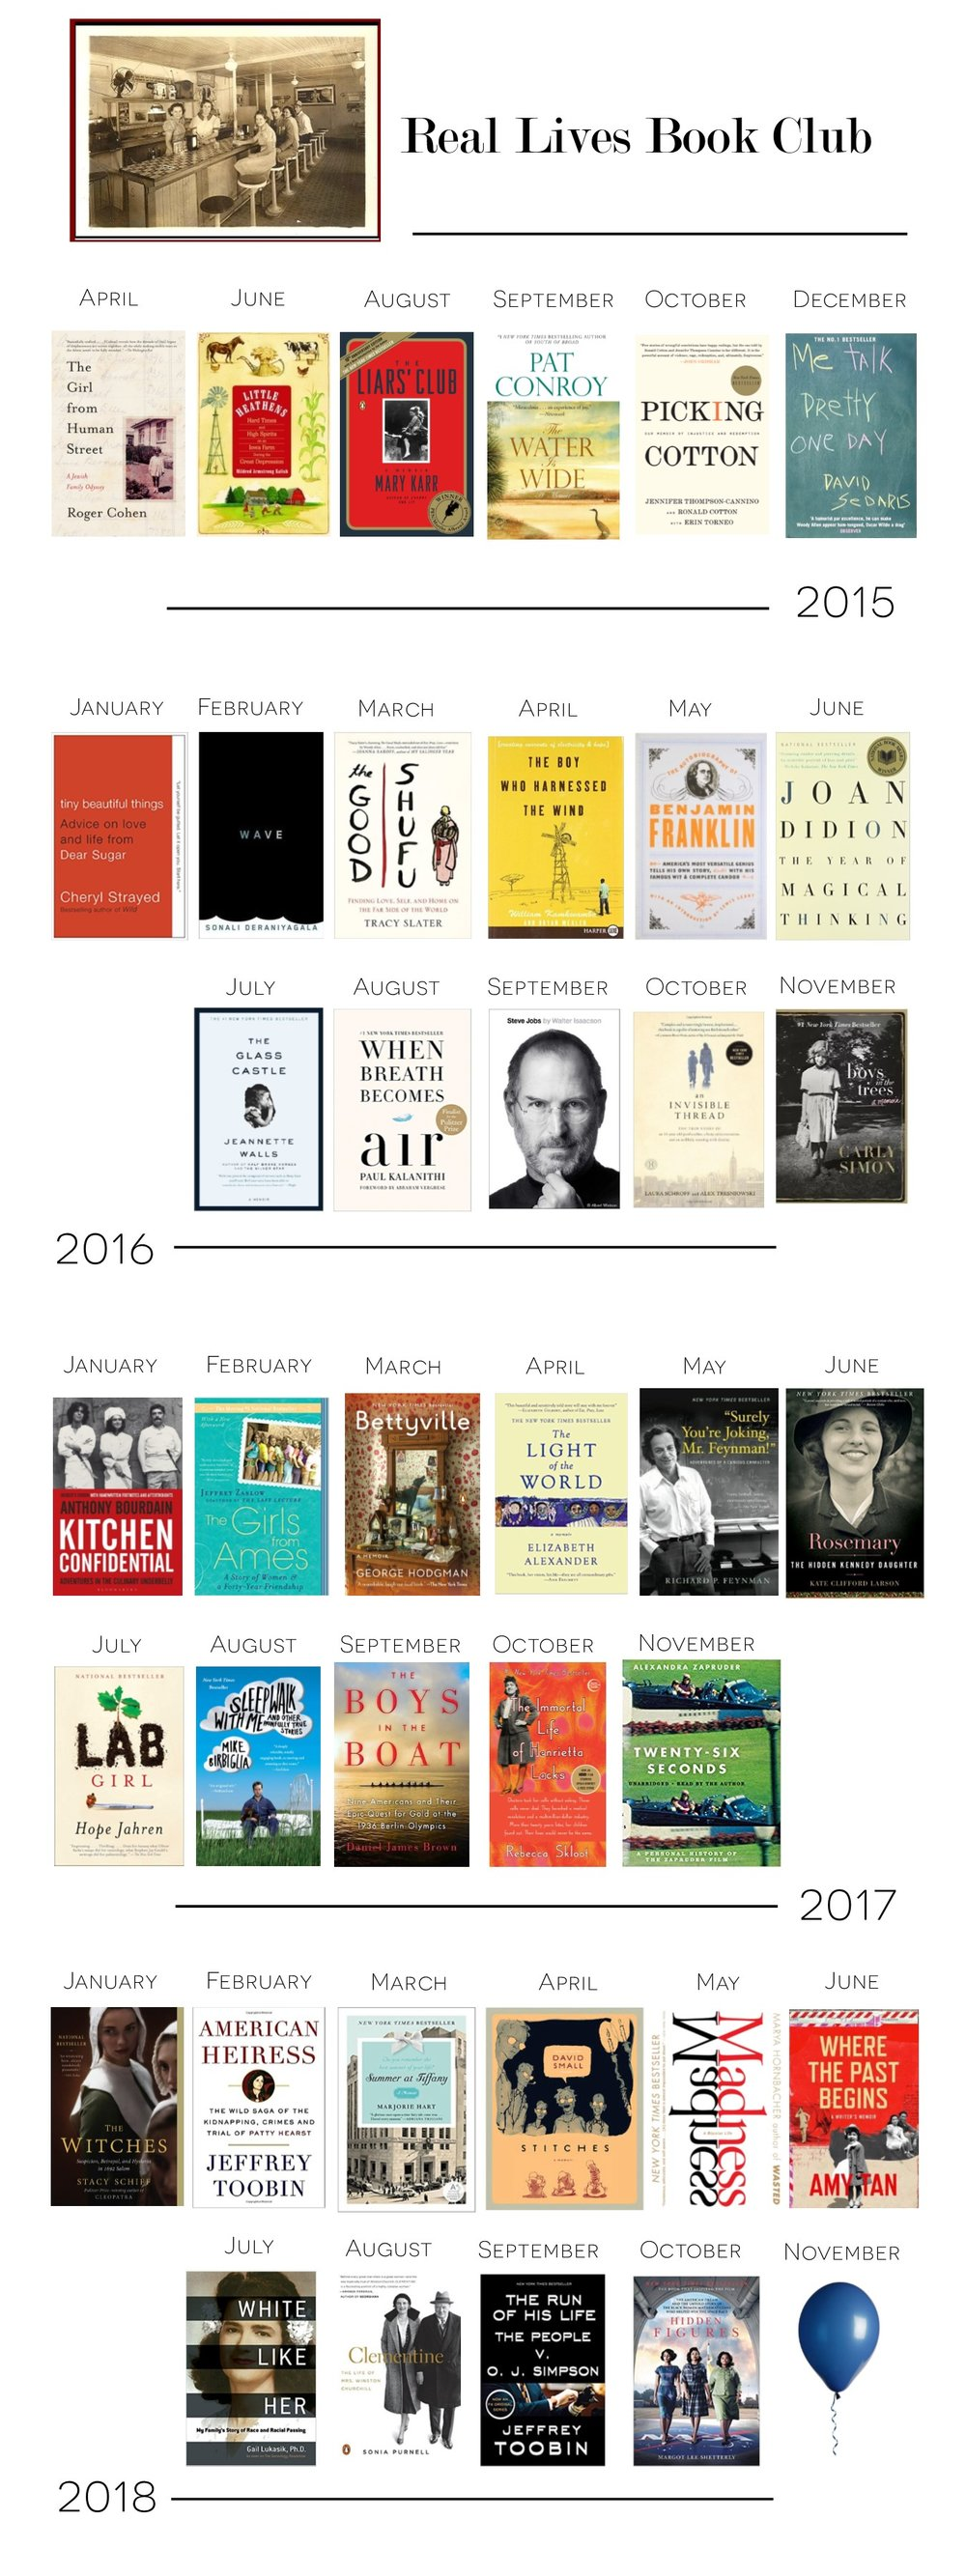 All the books we've read before! The Real Lives Book Club selections since our beginning in 2015 through 2018.